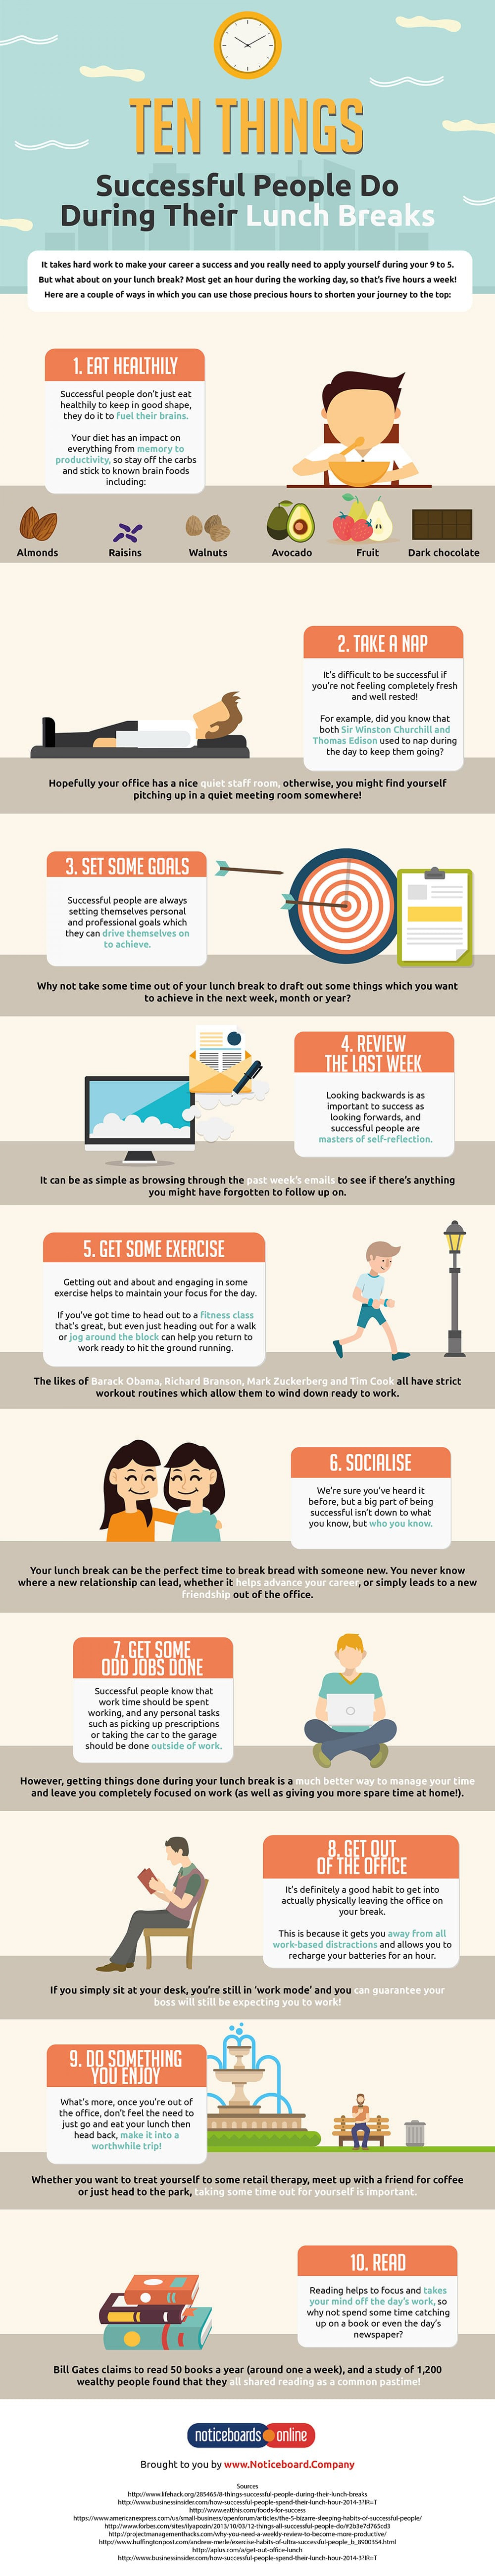 Ten Things Successful People Do During Their Lunch Breaks Infographic